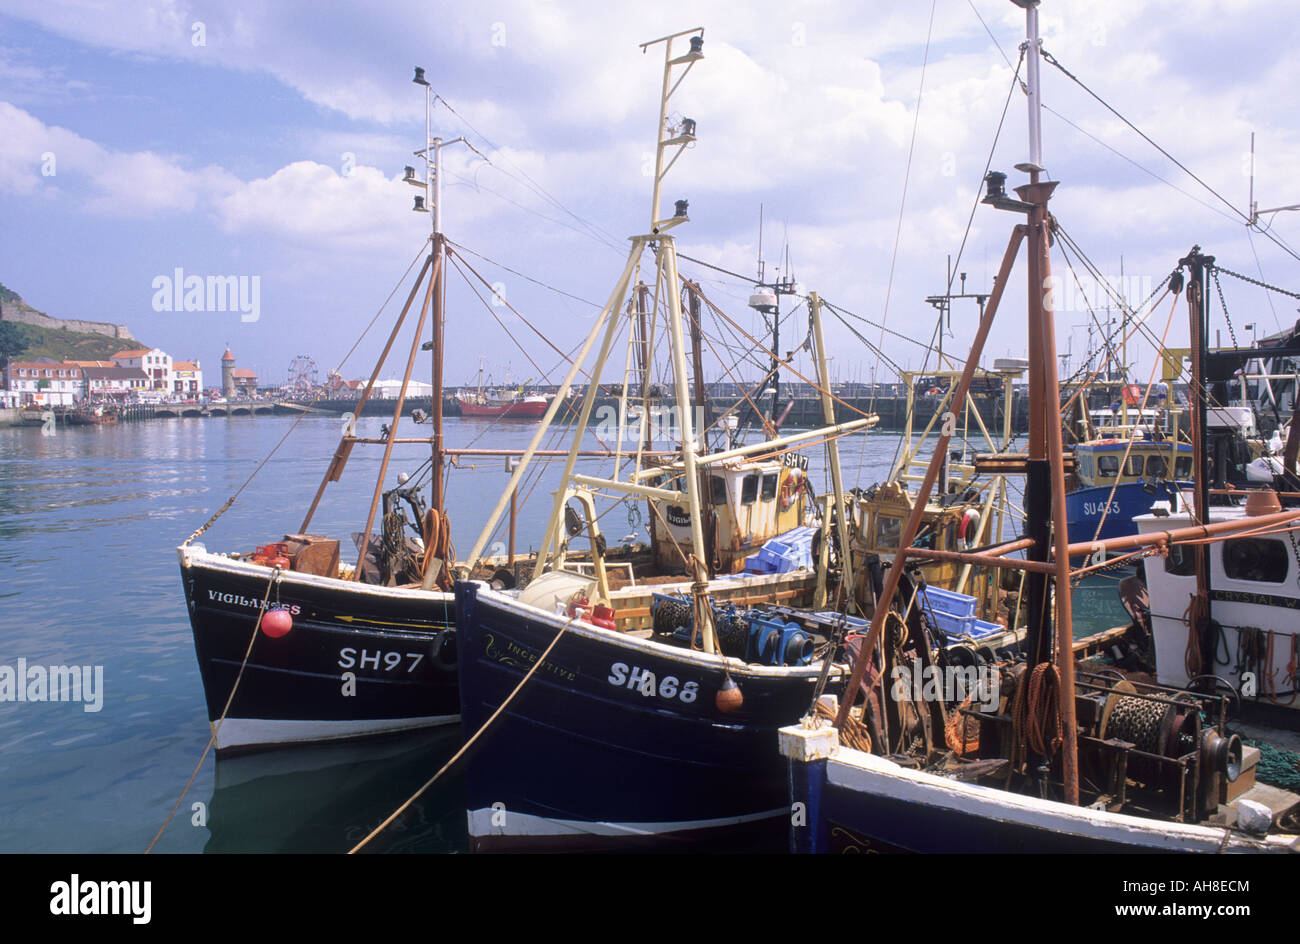 Scarborough Yorkshire fishing vessels boats town - Stock Image